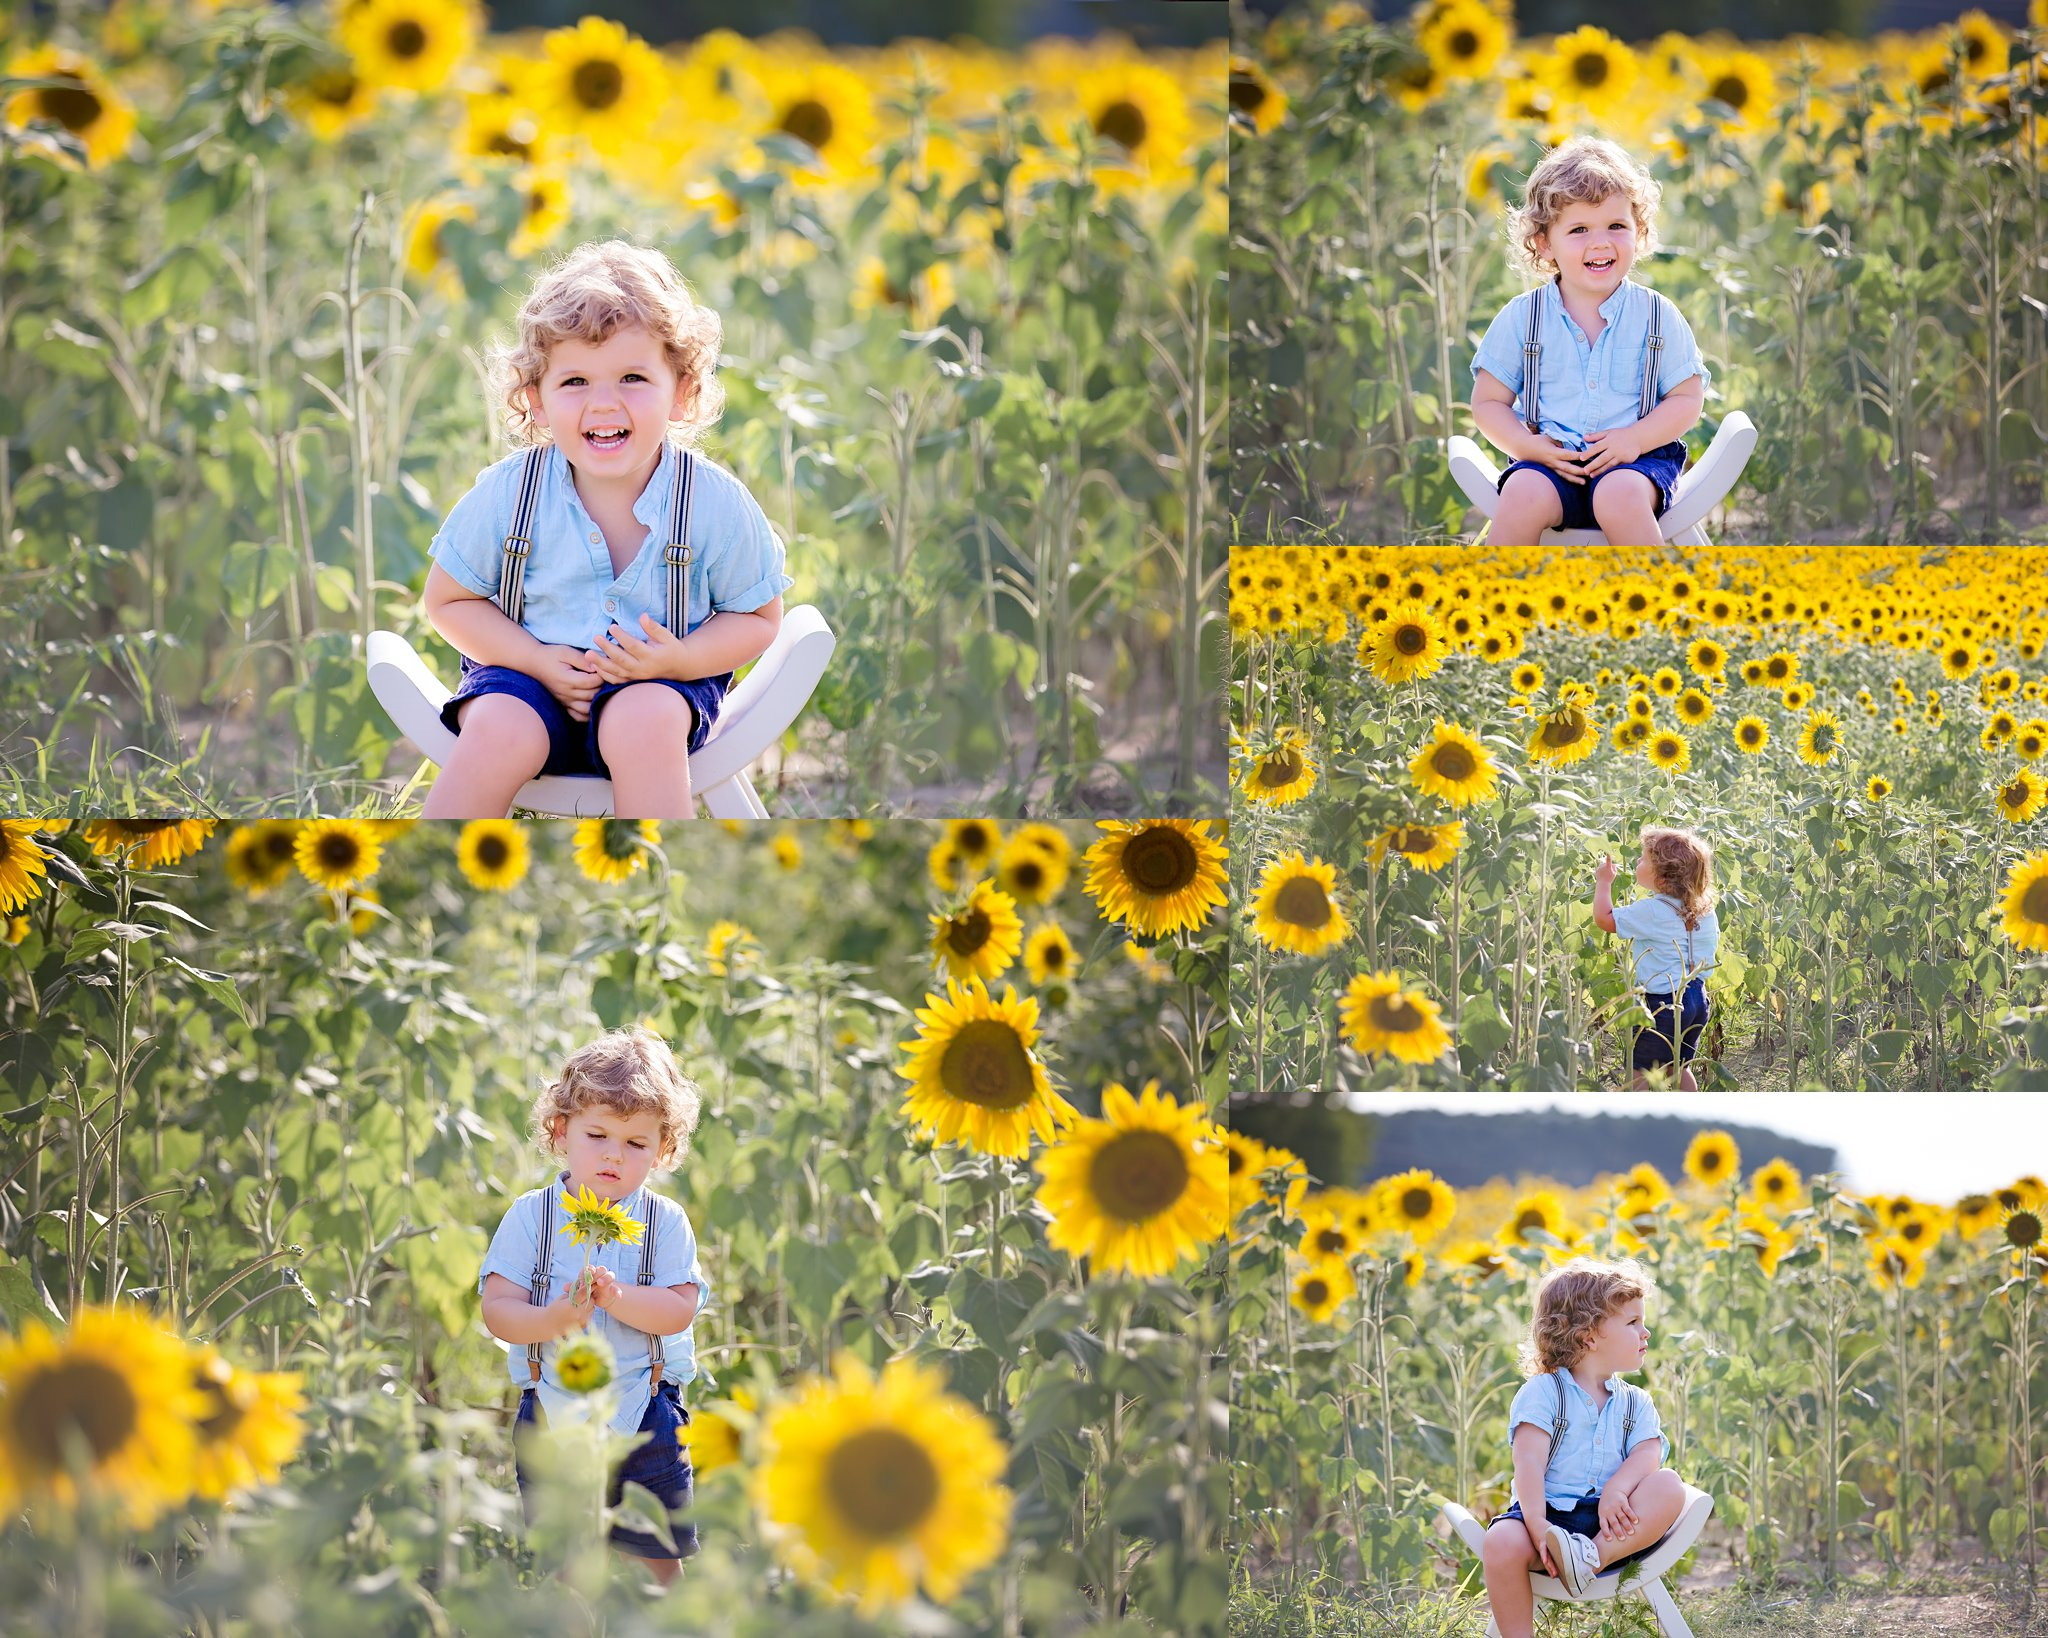 Raleigh_Sunflower_Mini_Session.jpg